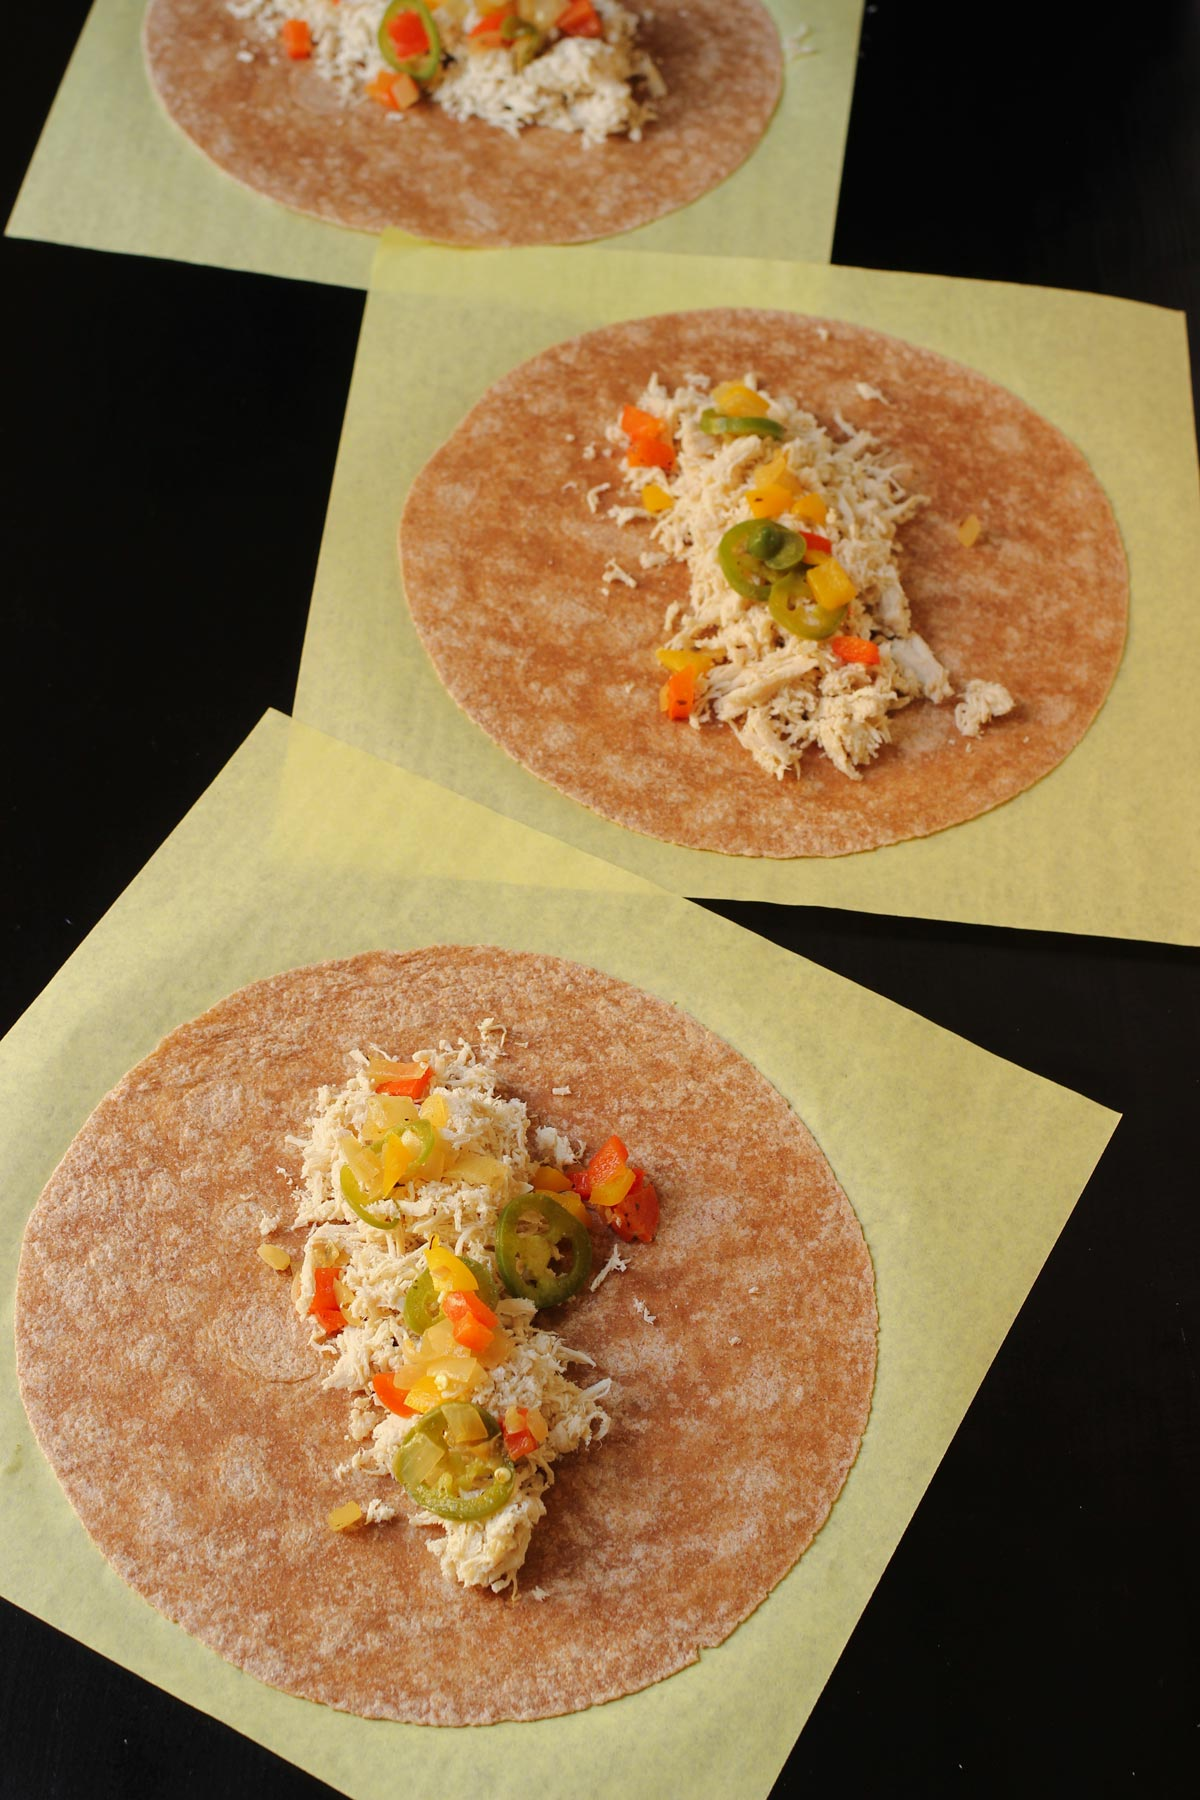 fajita vegetable mixture layered atop chicken layer in assembly line.